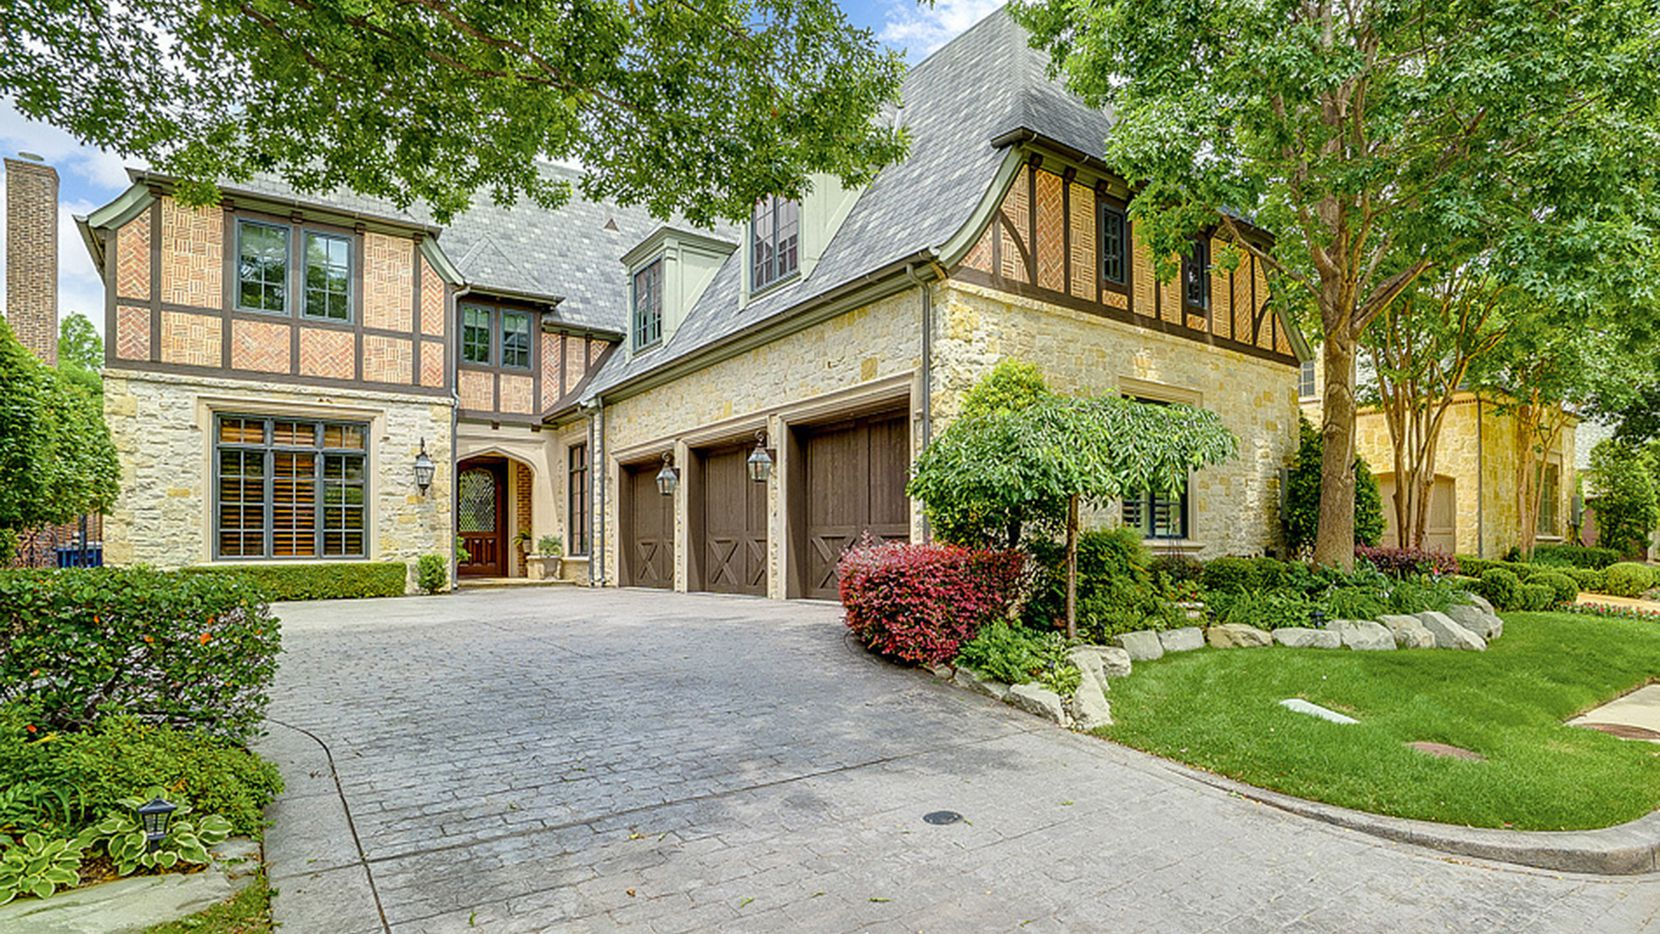 The estate at 79 Abbey Woods Lane in the guard/gated community of Glen Abbey is listed at $1,349,900.